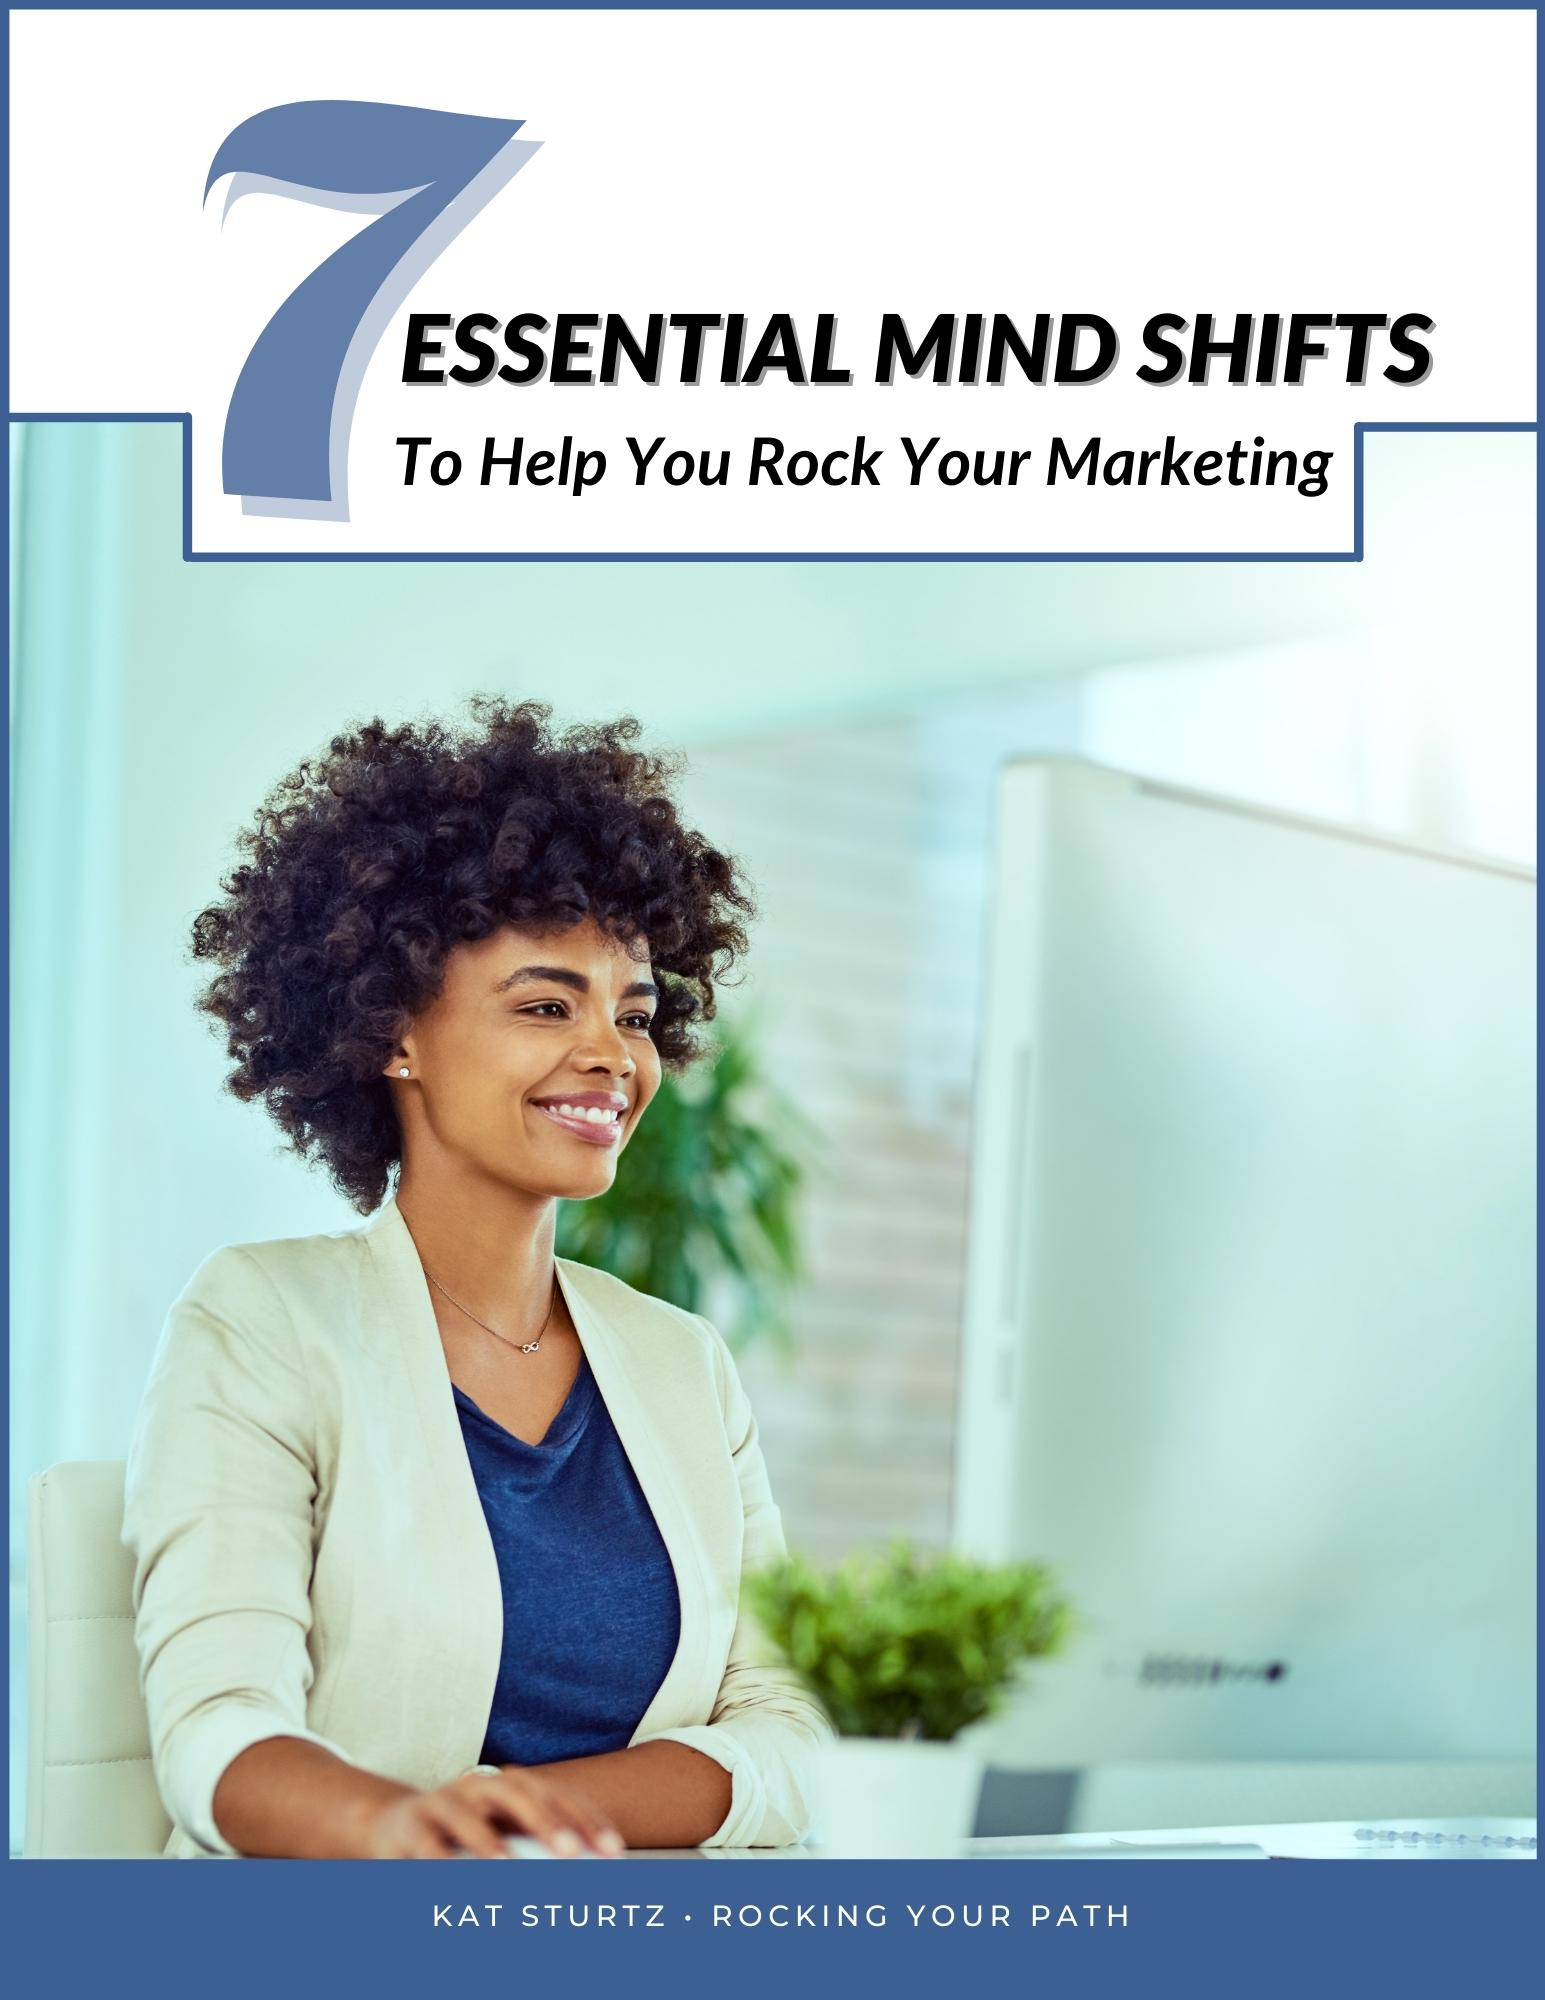 Cover Image 7 Essential Mind Shifts To Help You Rock Your Marketing